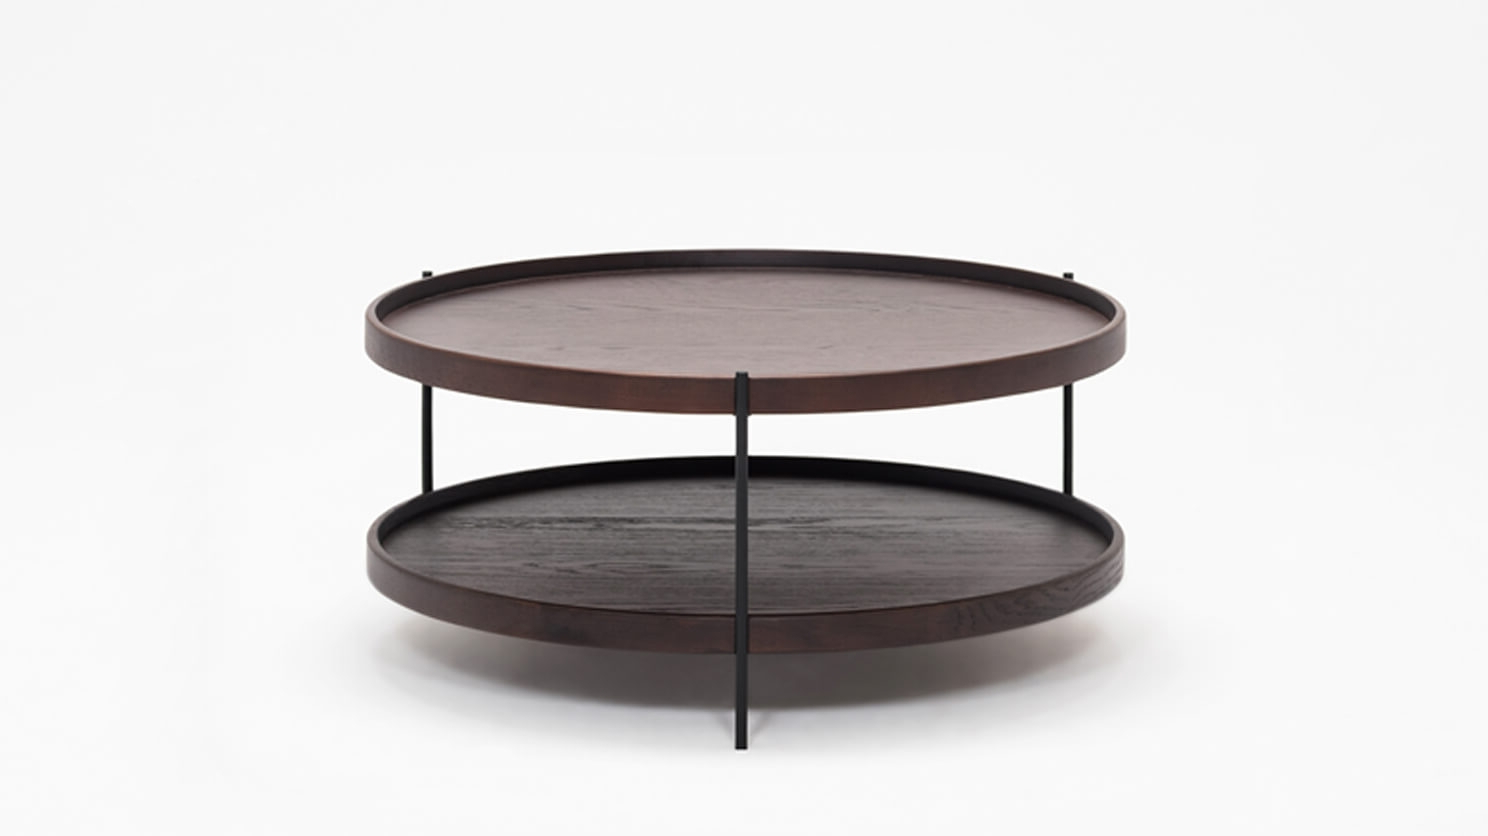 Smoked Oak Coffee Tables Regarding Newest Sage Round Coffee Table – Smoked Oak (View 3 of 20)